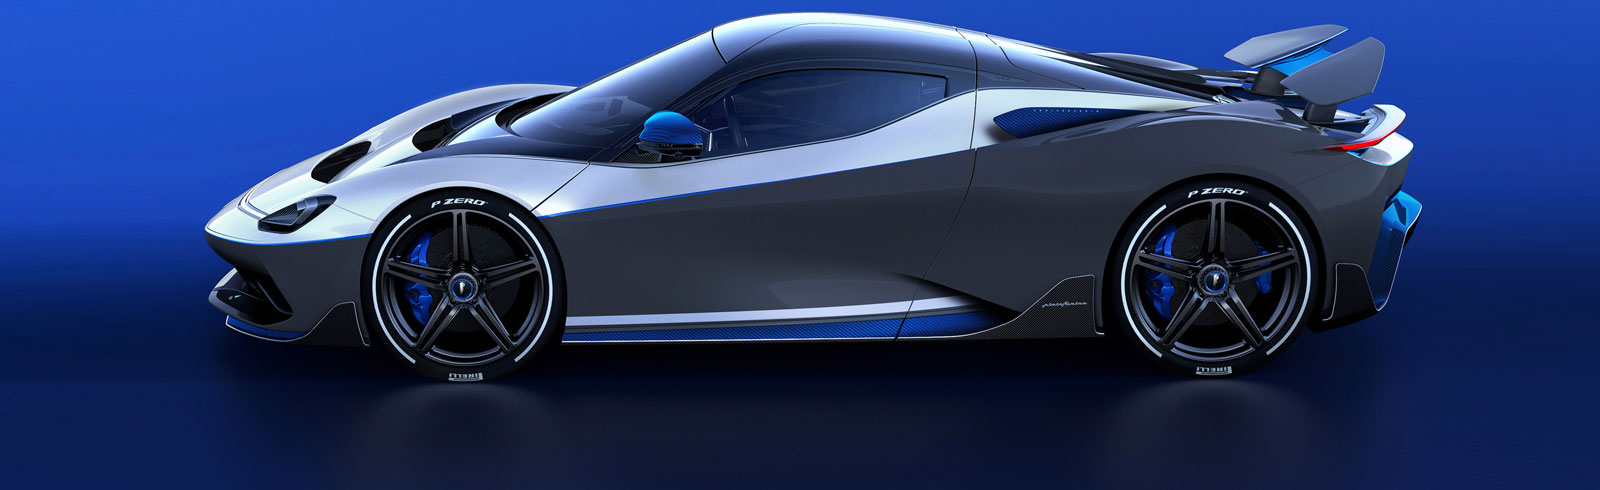 Automobili Pininfarina Battista Anniversario goes official, only 5 units will be made